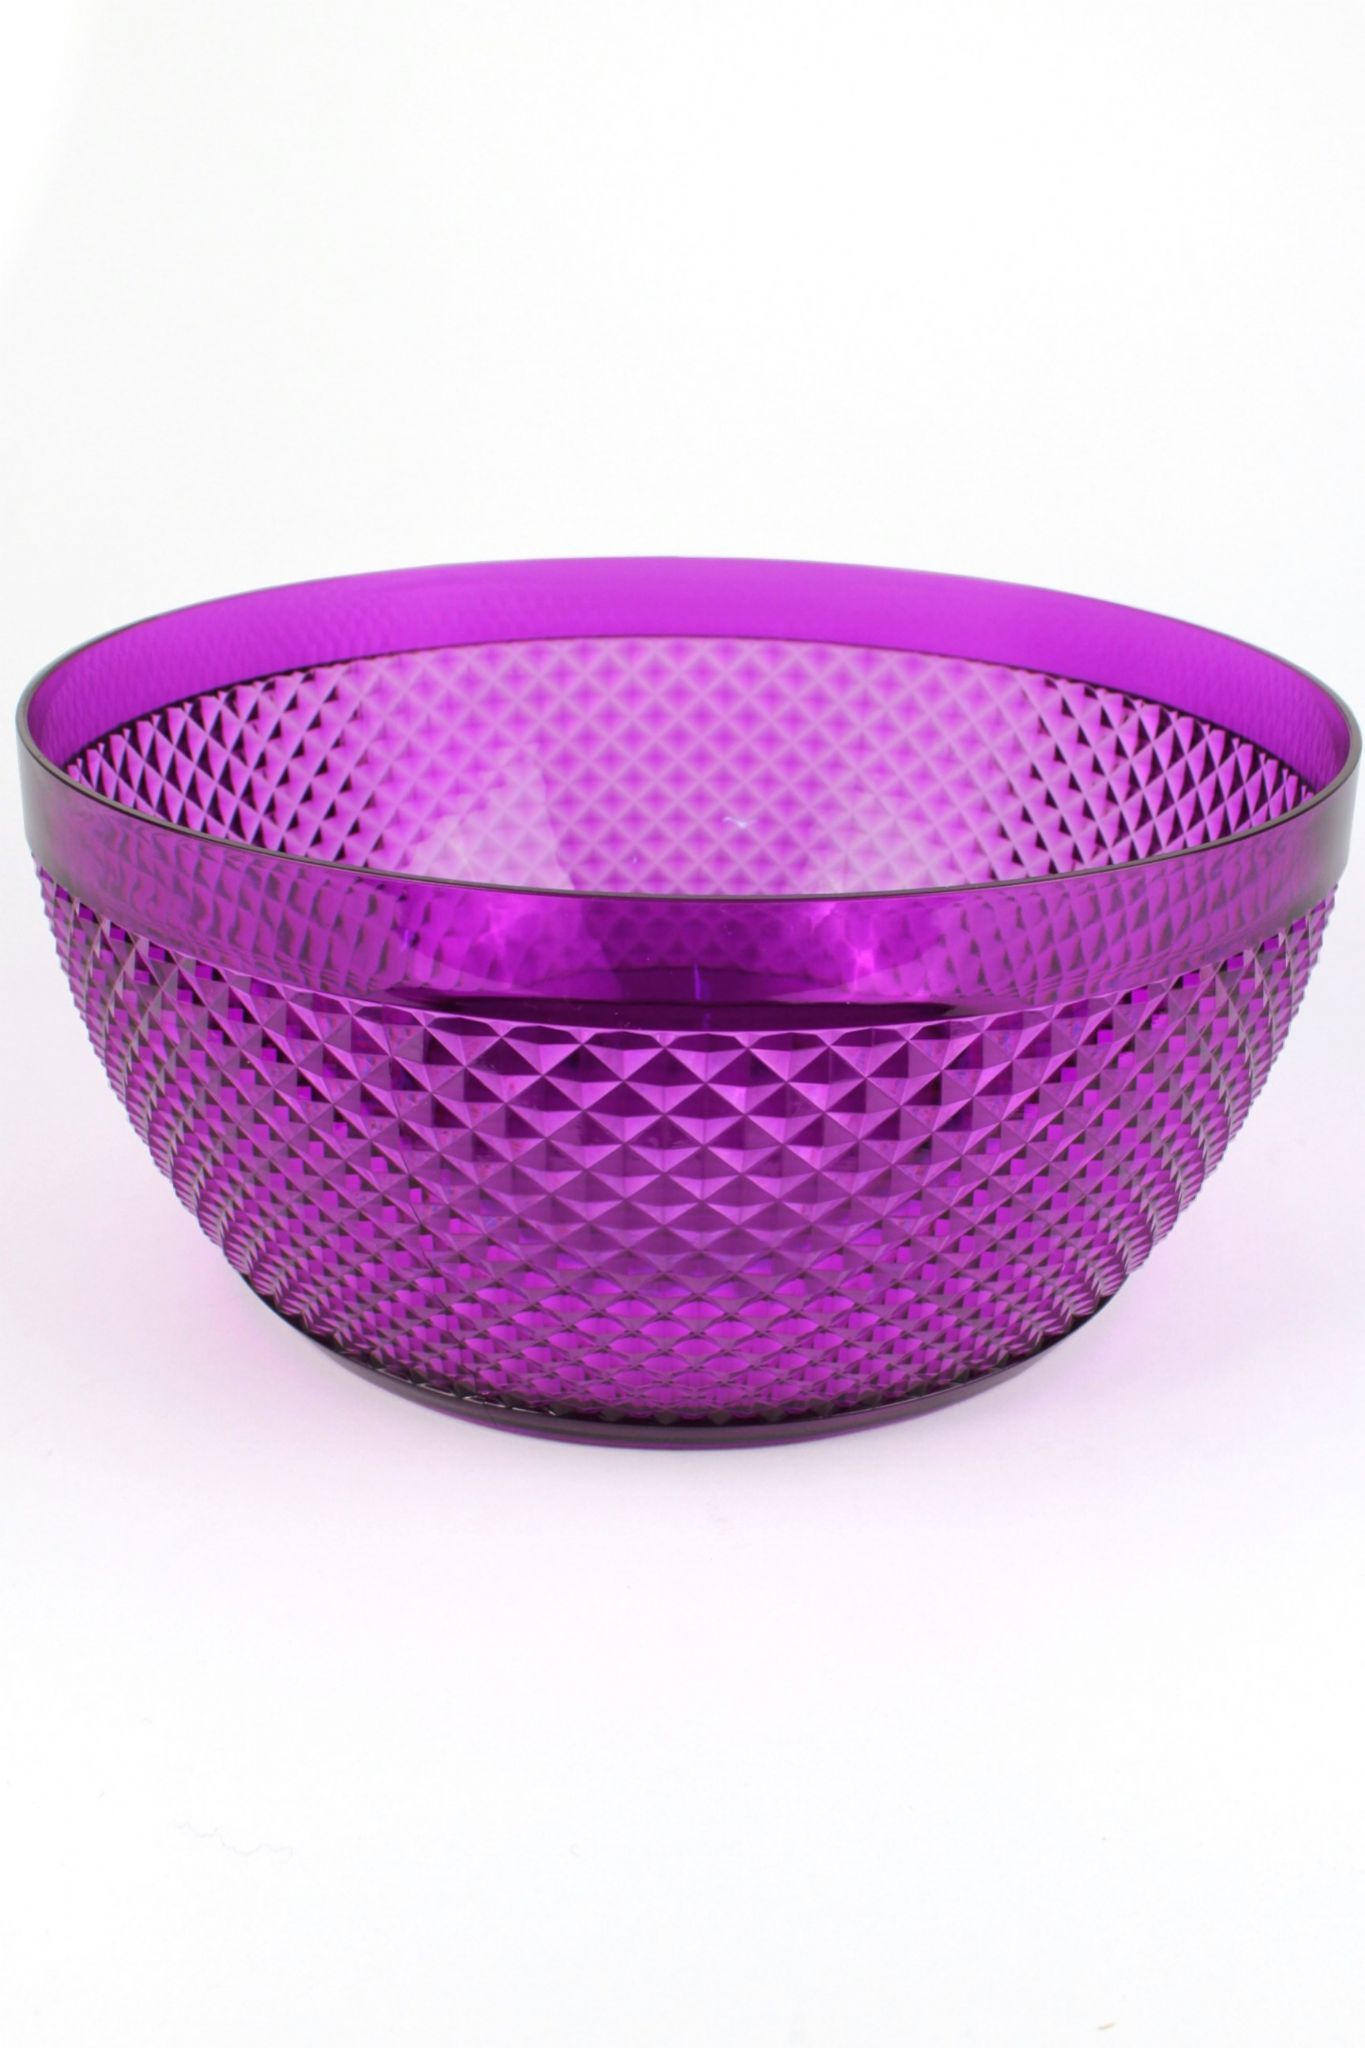 Crystal Effect Plastic Party Serving Bowl Coloured Picnic